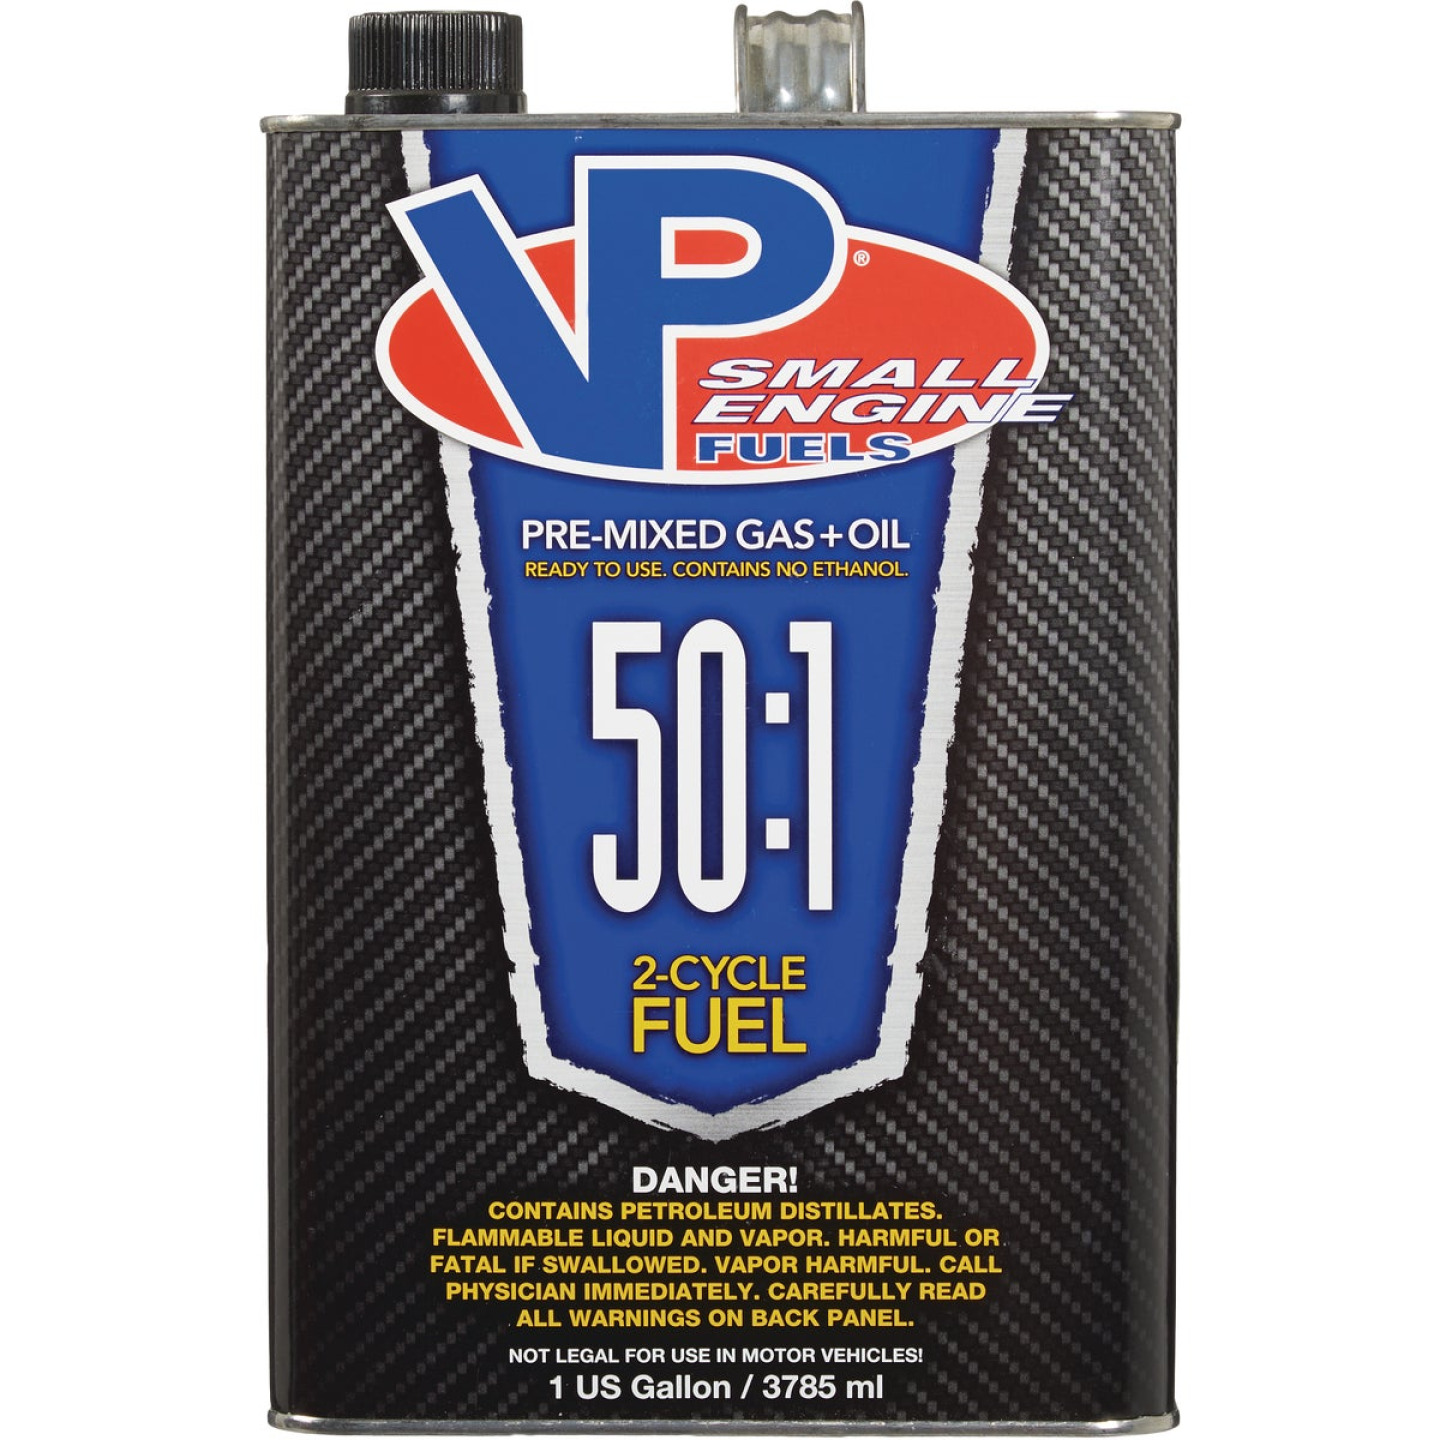 VP Small Engine Fuels 1 Gal. 50:1 Ethanol-Free Gas & Oil Pre-Mix Image 2